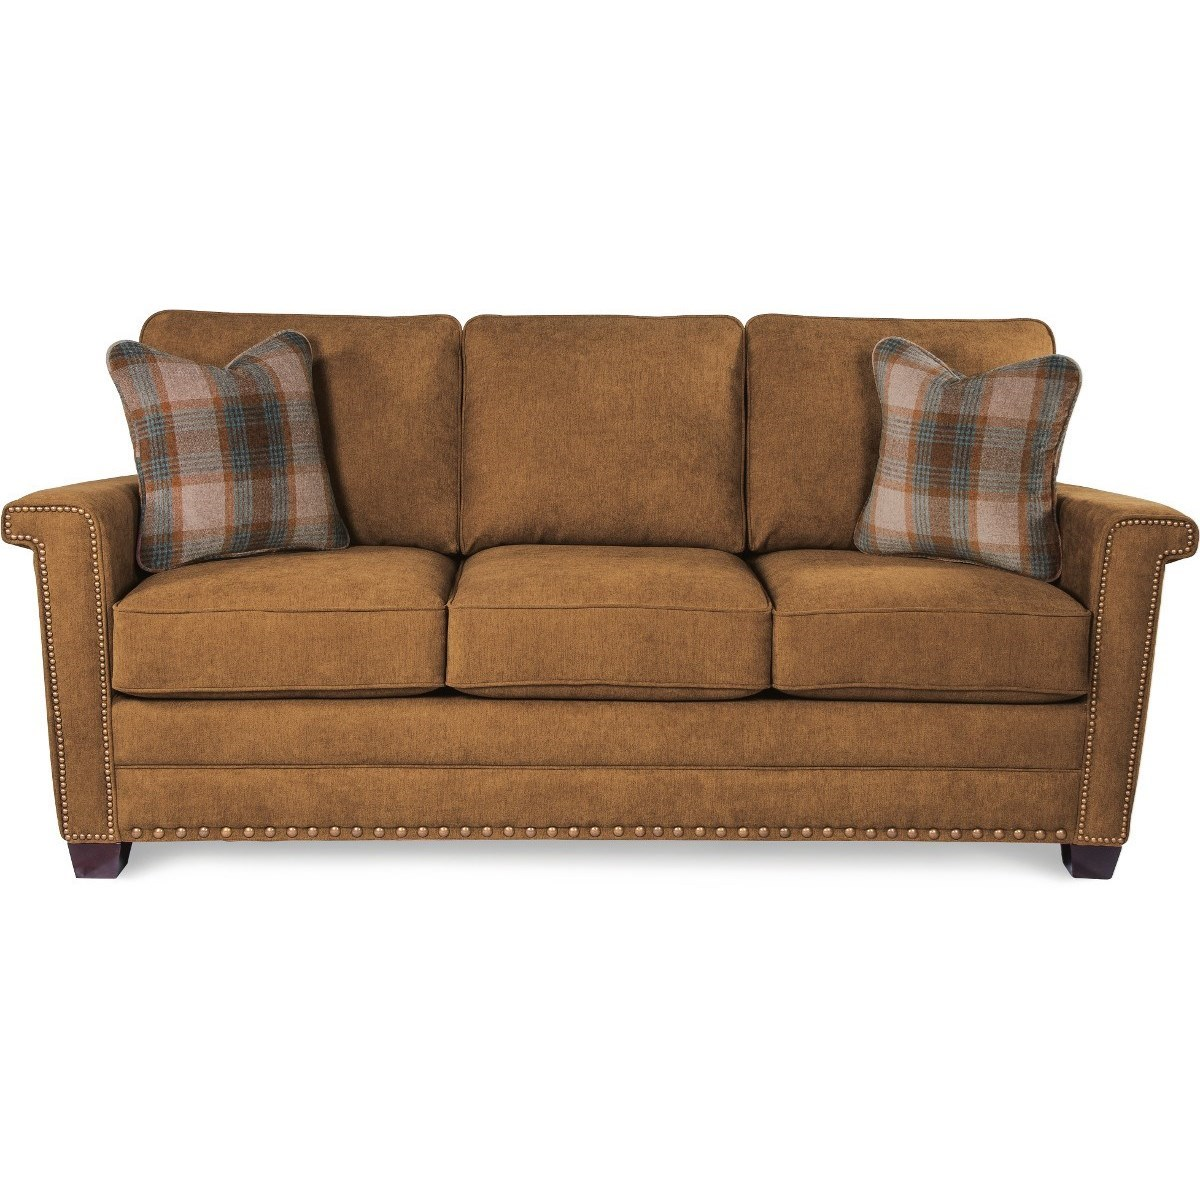 Bexley Sofa by La-Z-Boy at Home Furnishings Direct